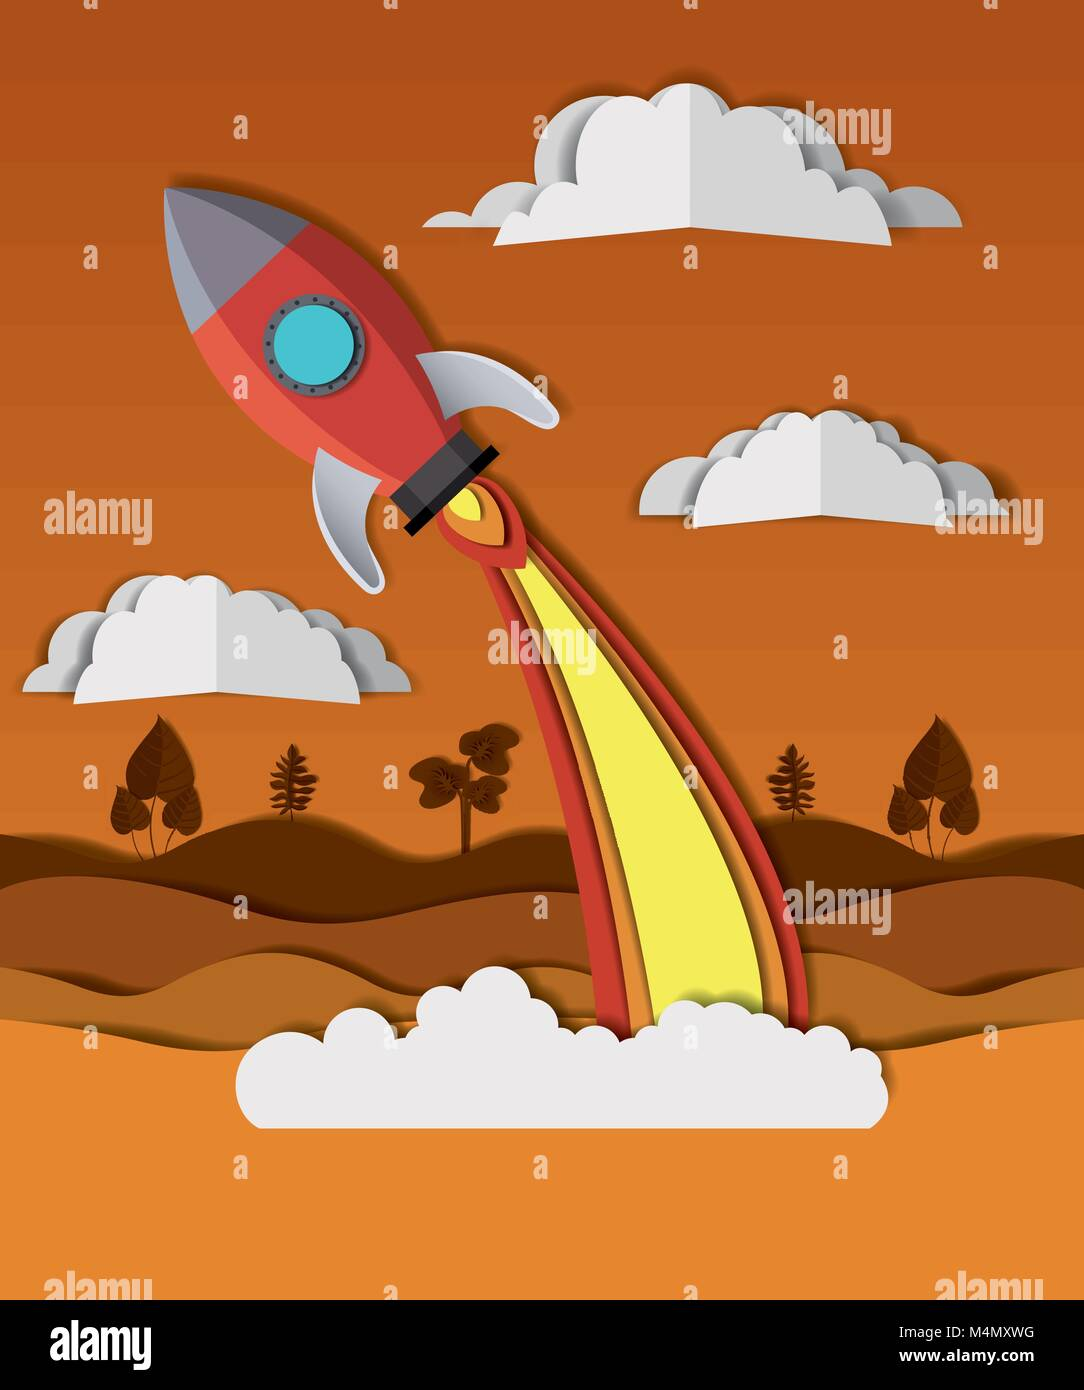 landscape with rocket launcher craft - Stock Image